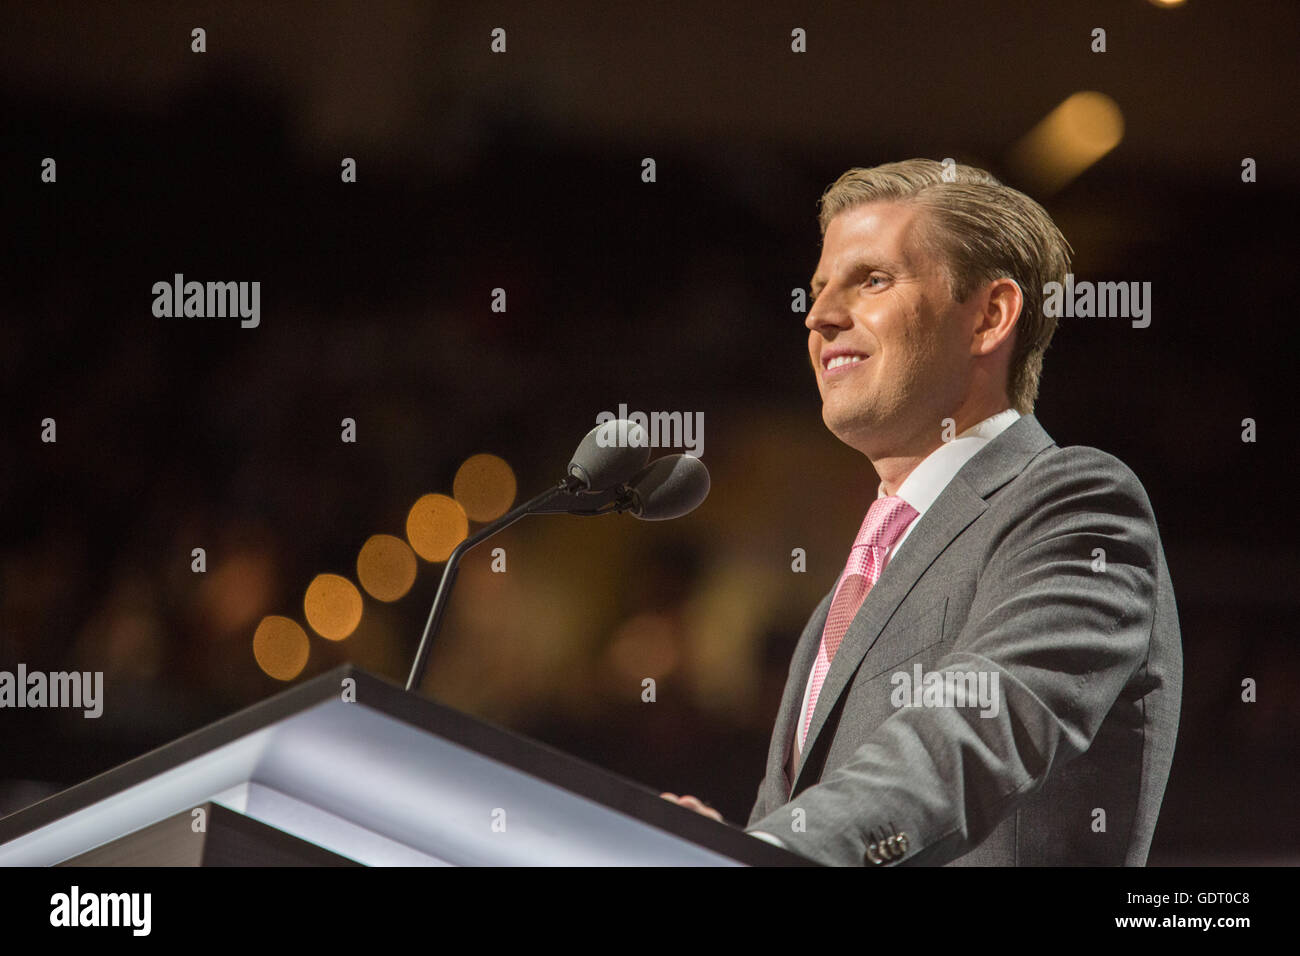 Cleveland, Ohio, USA; 20. Juli 2016: Eric Trump, Sohn von Donald Trump, spricht auf der Republican National Convention. Stockbild